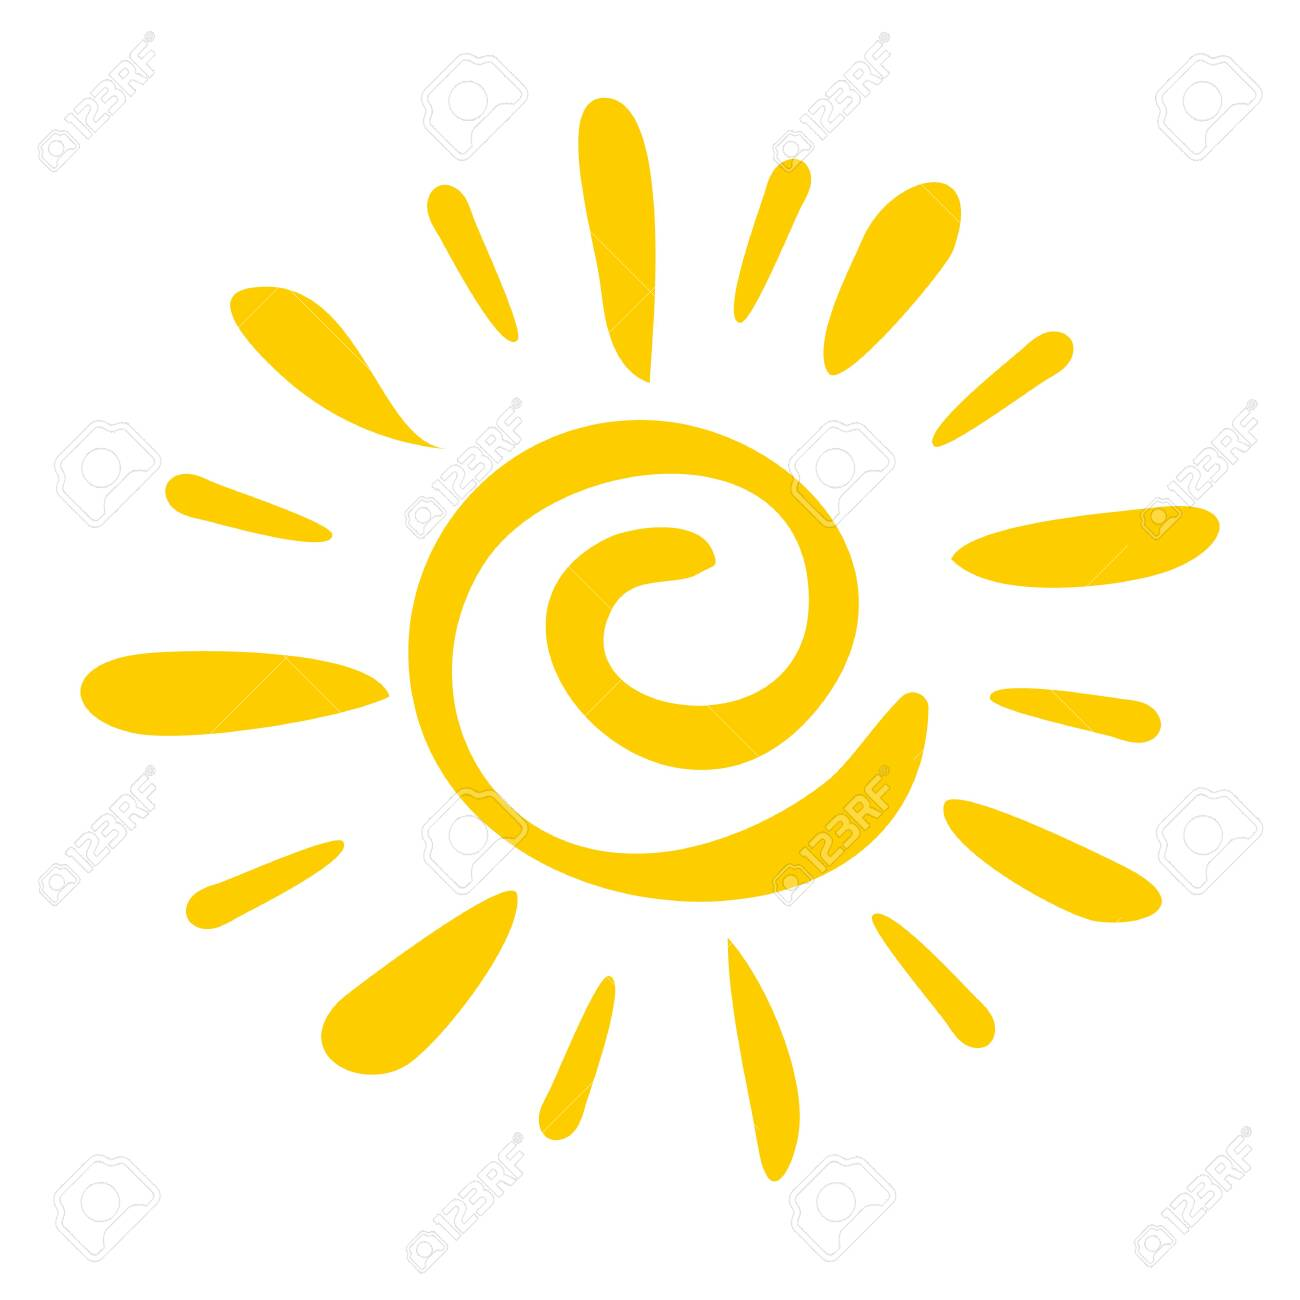 Hand drawn icon Sun isolated on a white background. - 129676666